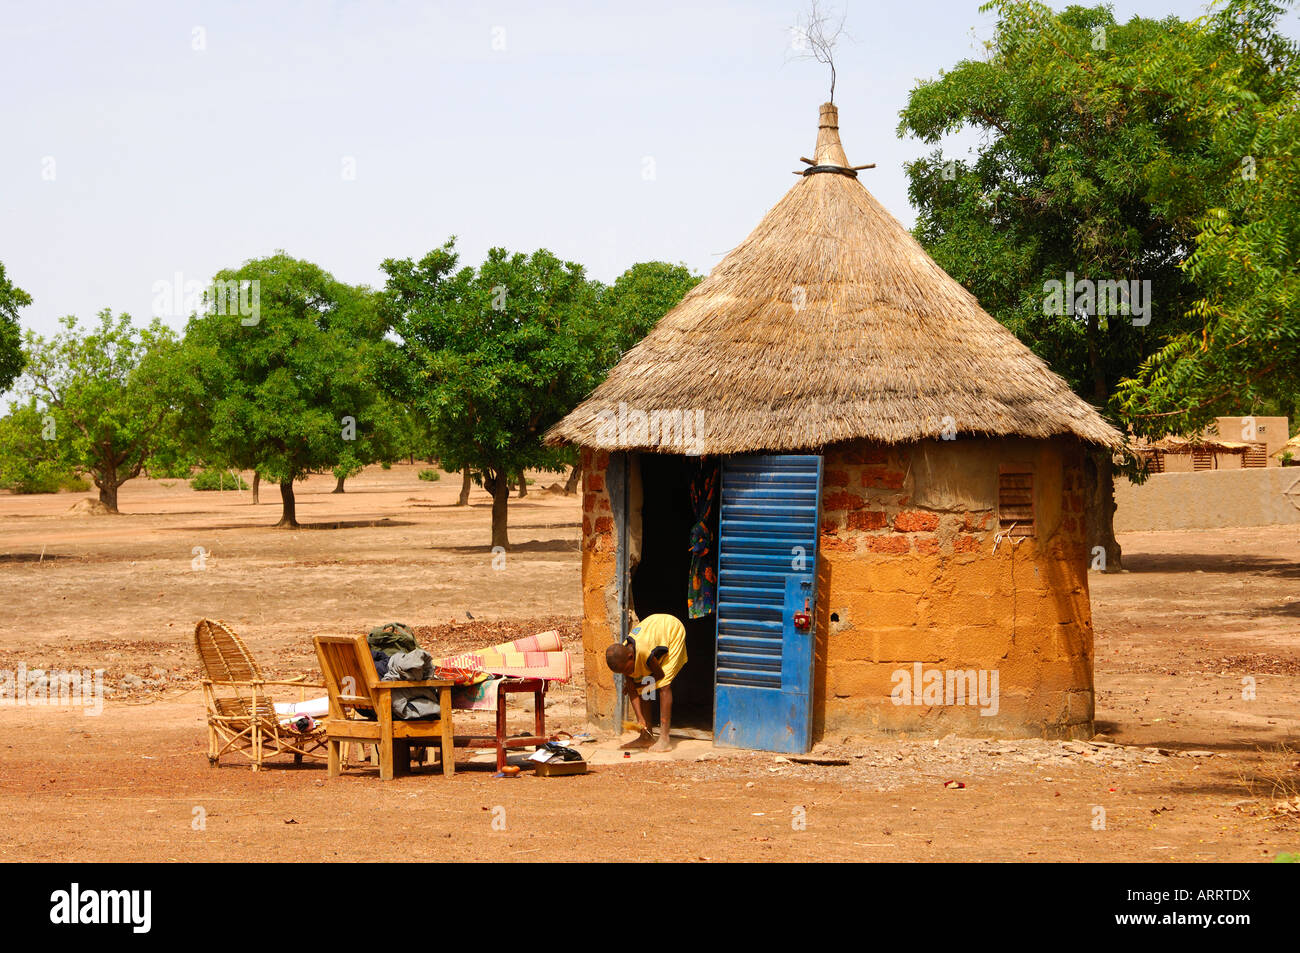 Boy Cleaning An African Round Hut With Thatched Roof